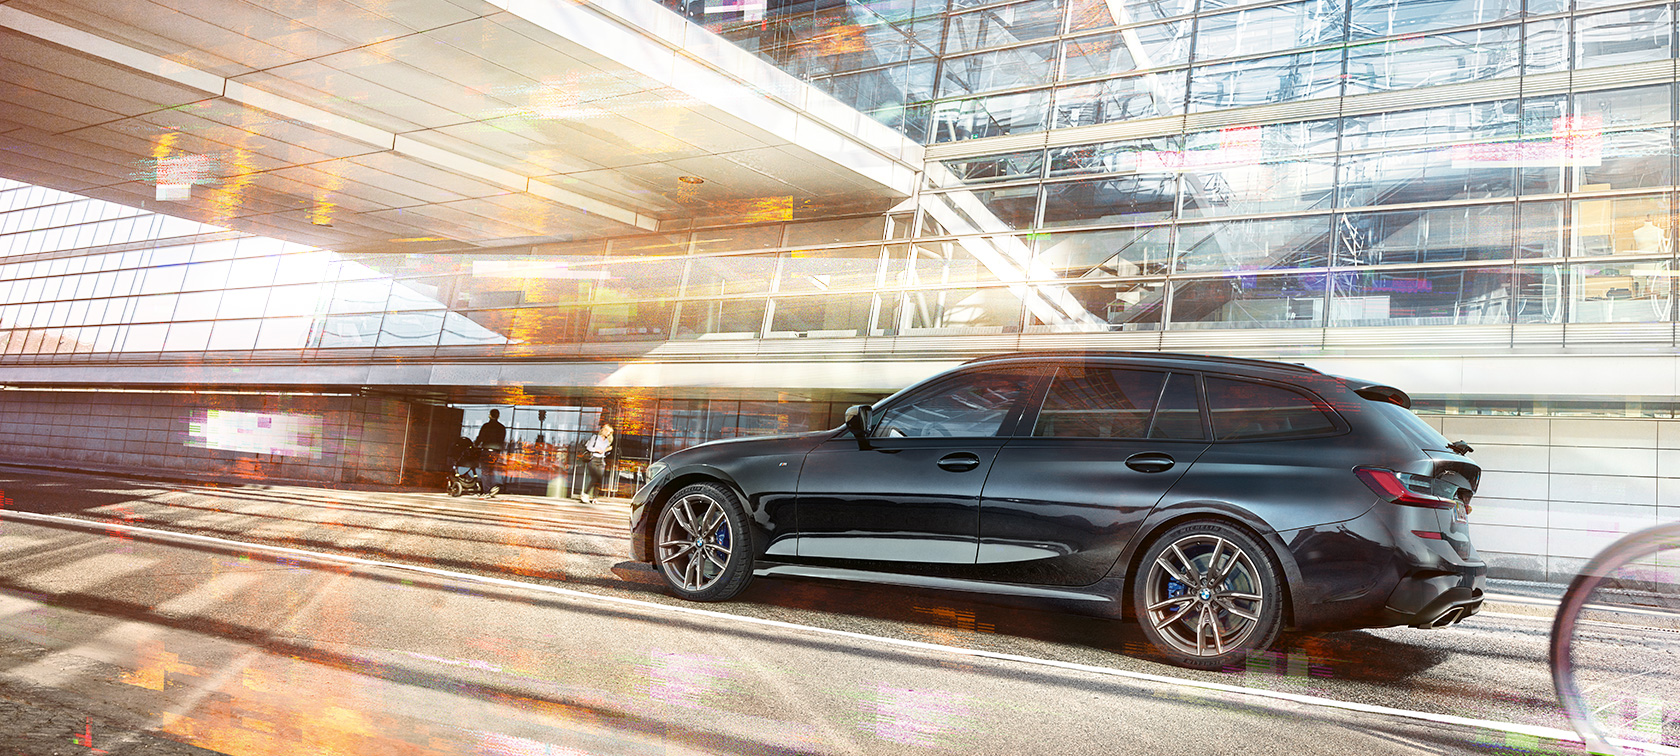 BMW M340i xDrive Touring, lateral driving shot in front of an urban glass building